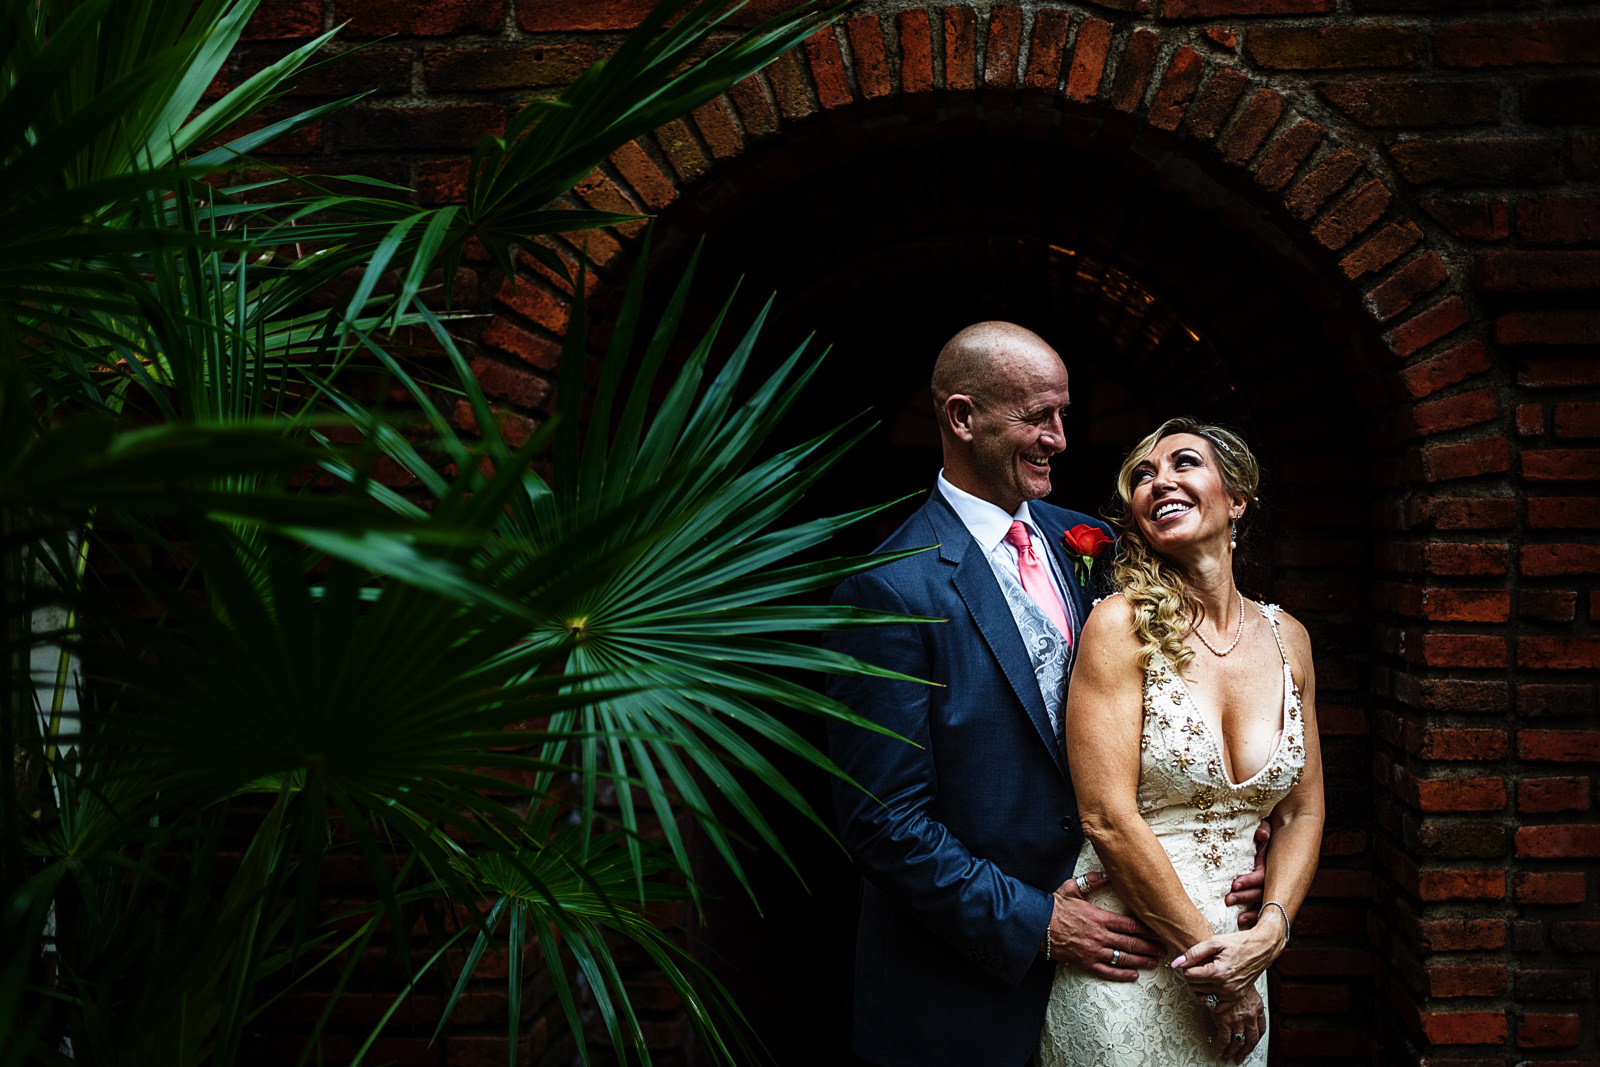 Bride and groom standing at the beginning of a tunnel next to a palm plant